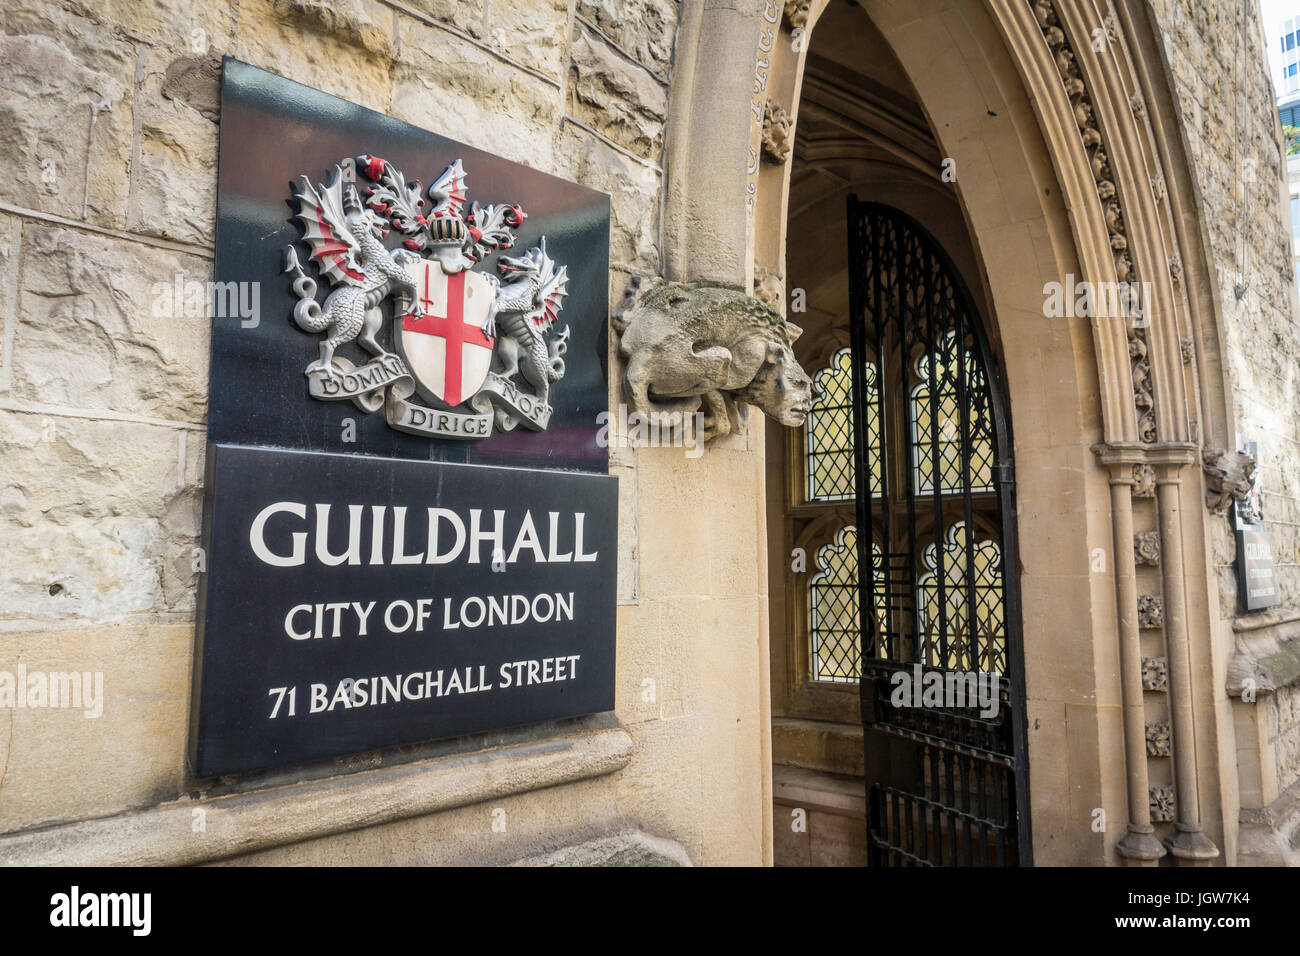 Entrance and sign for Guildhall, Basinghall Street, City of London, UK - Stock Image